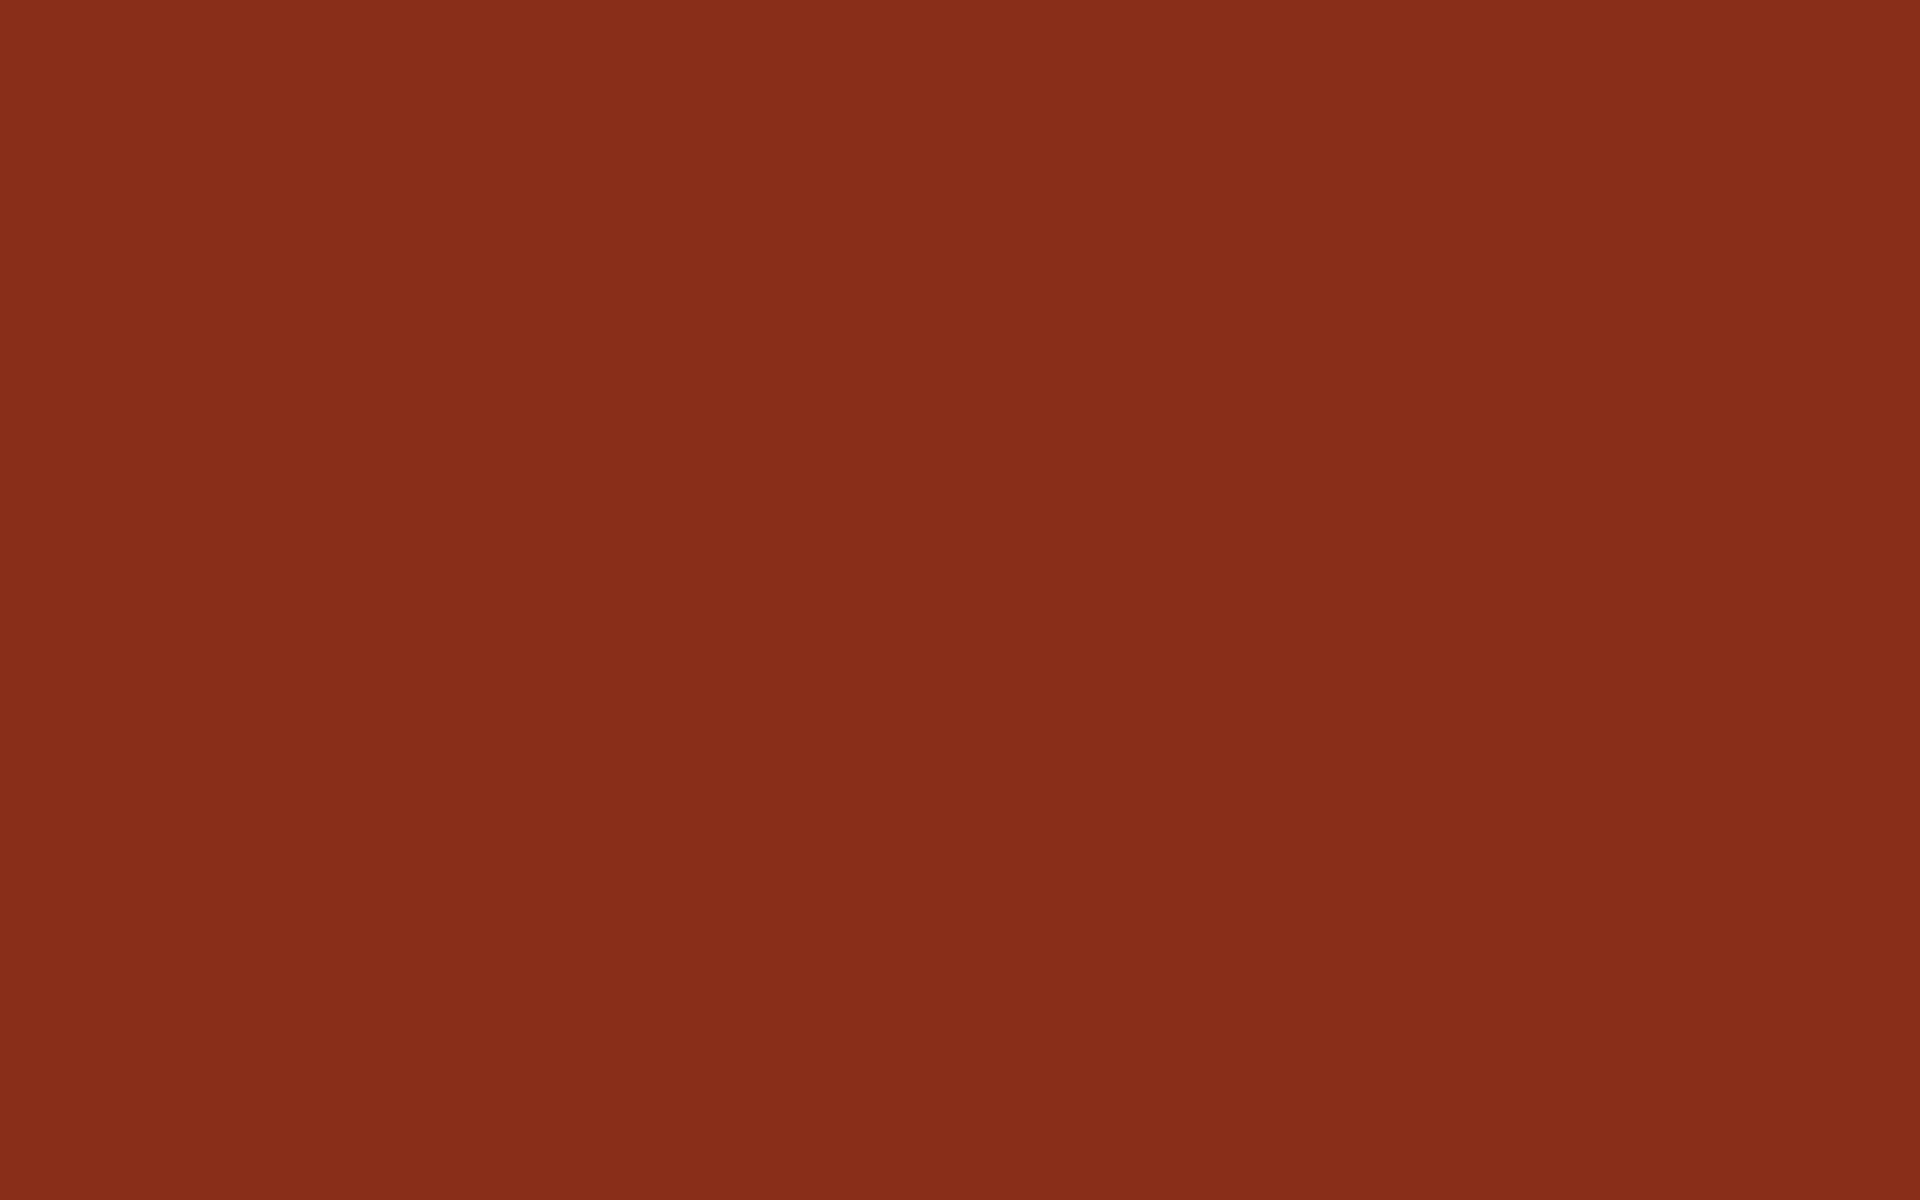 1920x1200 Sienna Solid Color Background